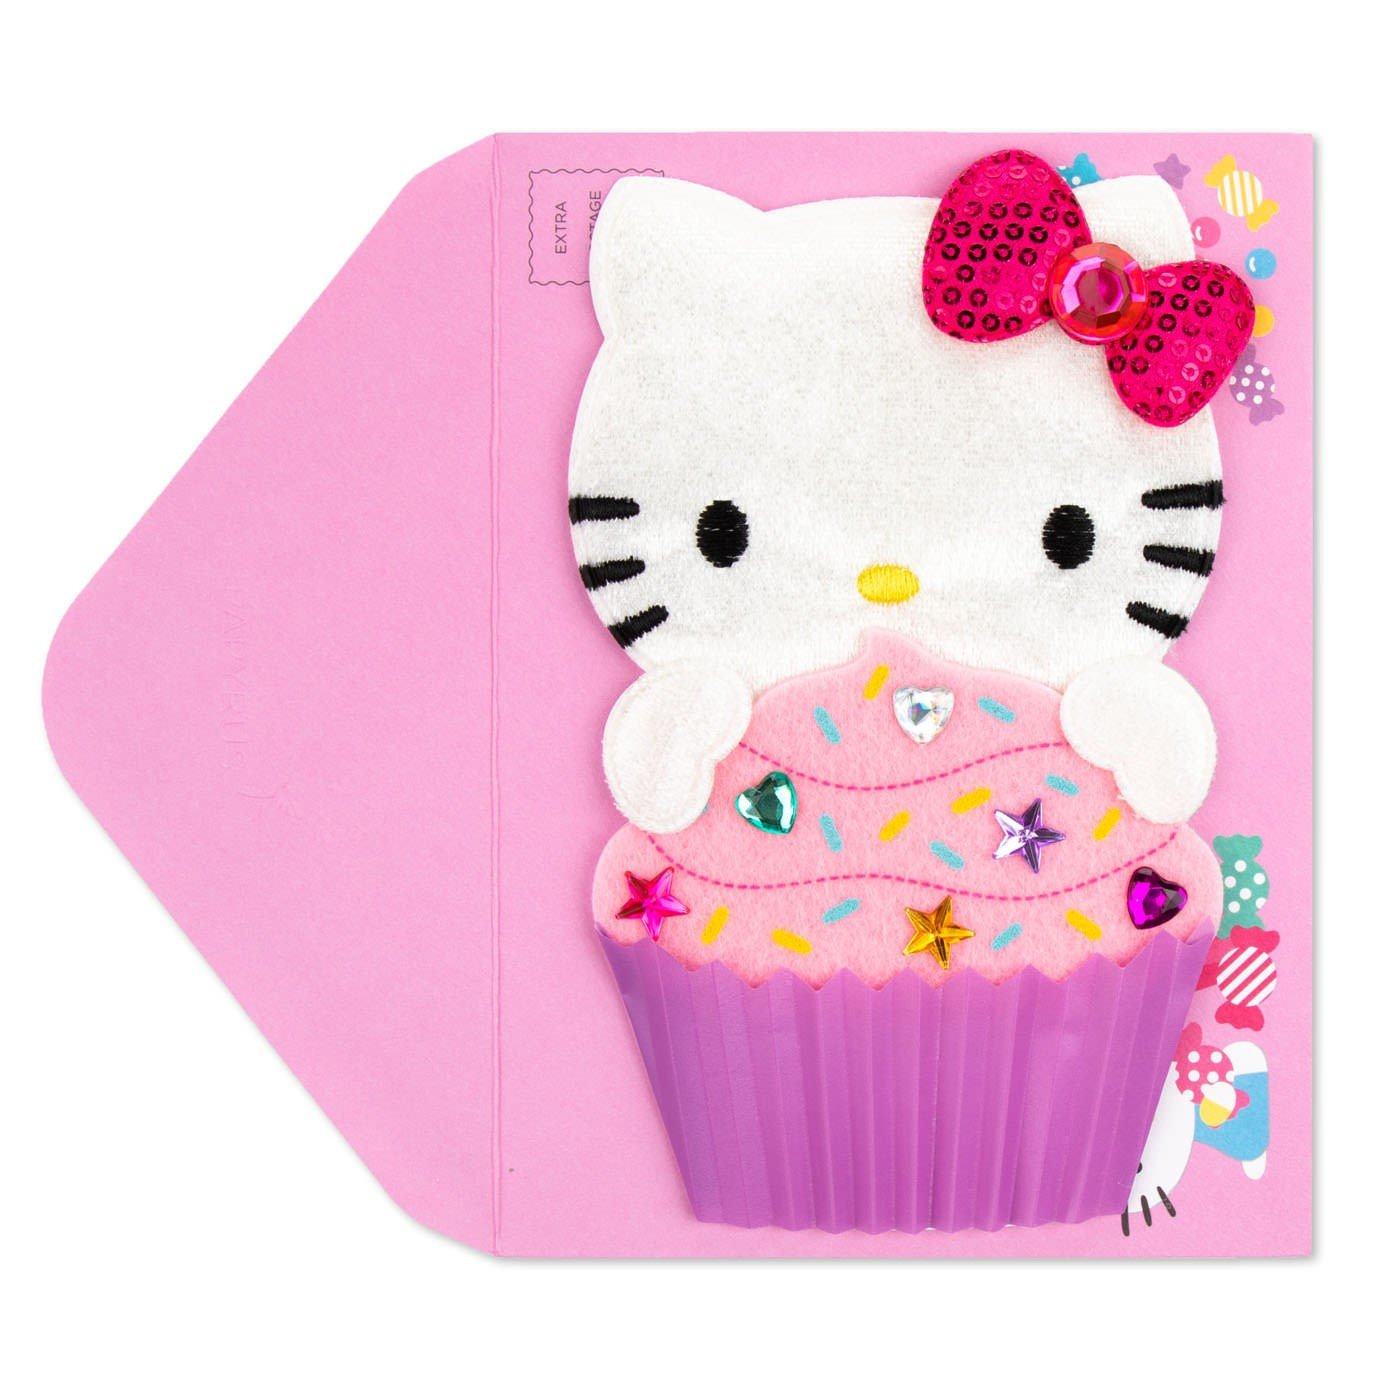 Hello Kitty Bedroom In A Box New Hello Kitty Cupcake Birthday Card